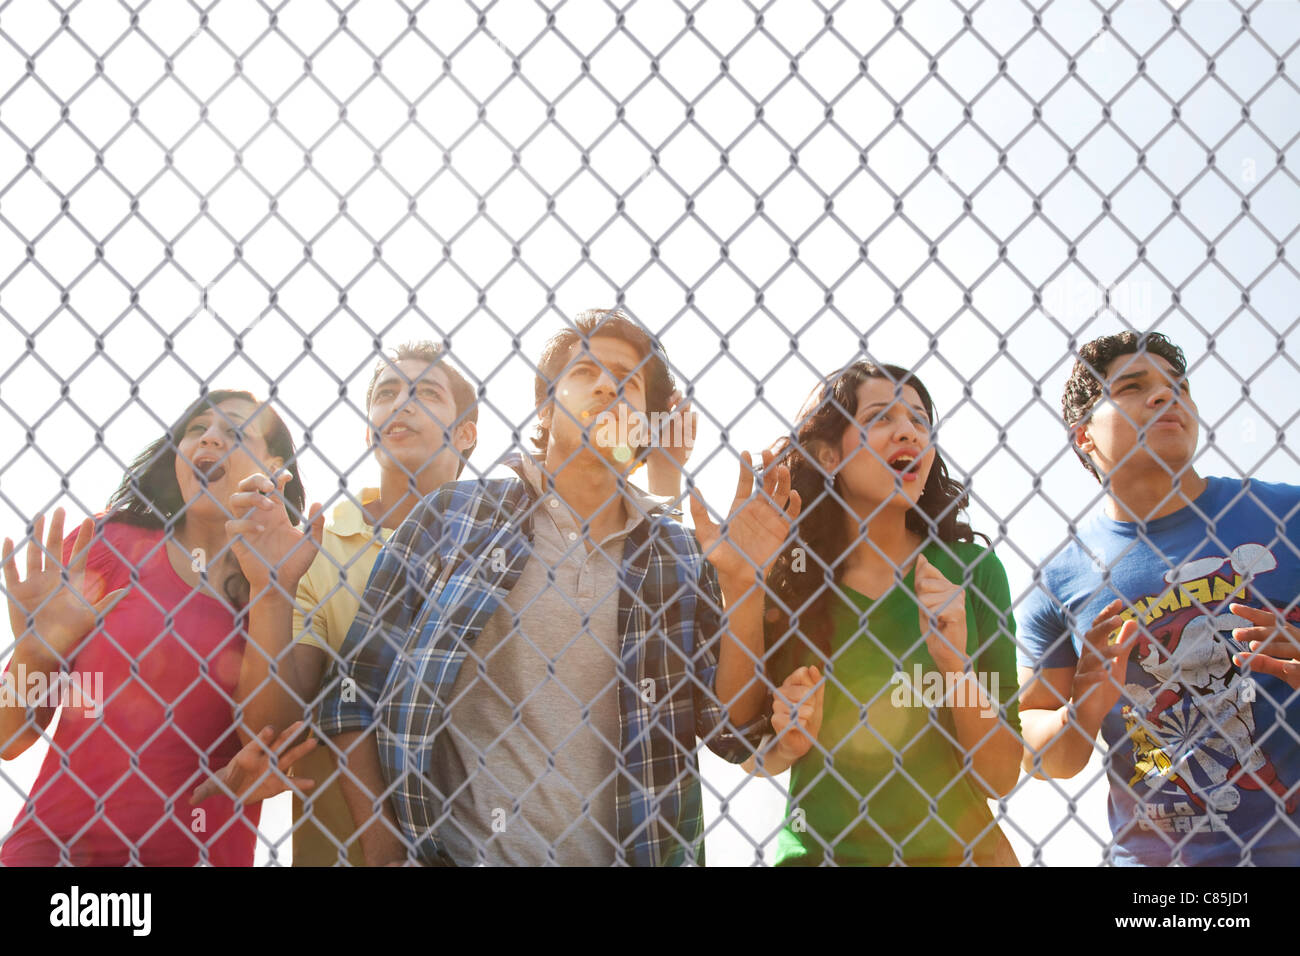 Youngsters watching a match through a wire mesh Stock Photo